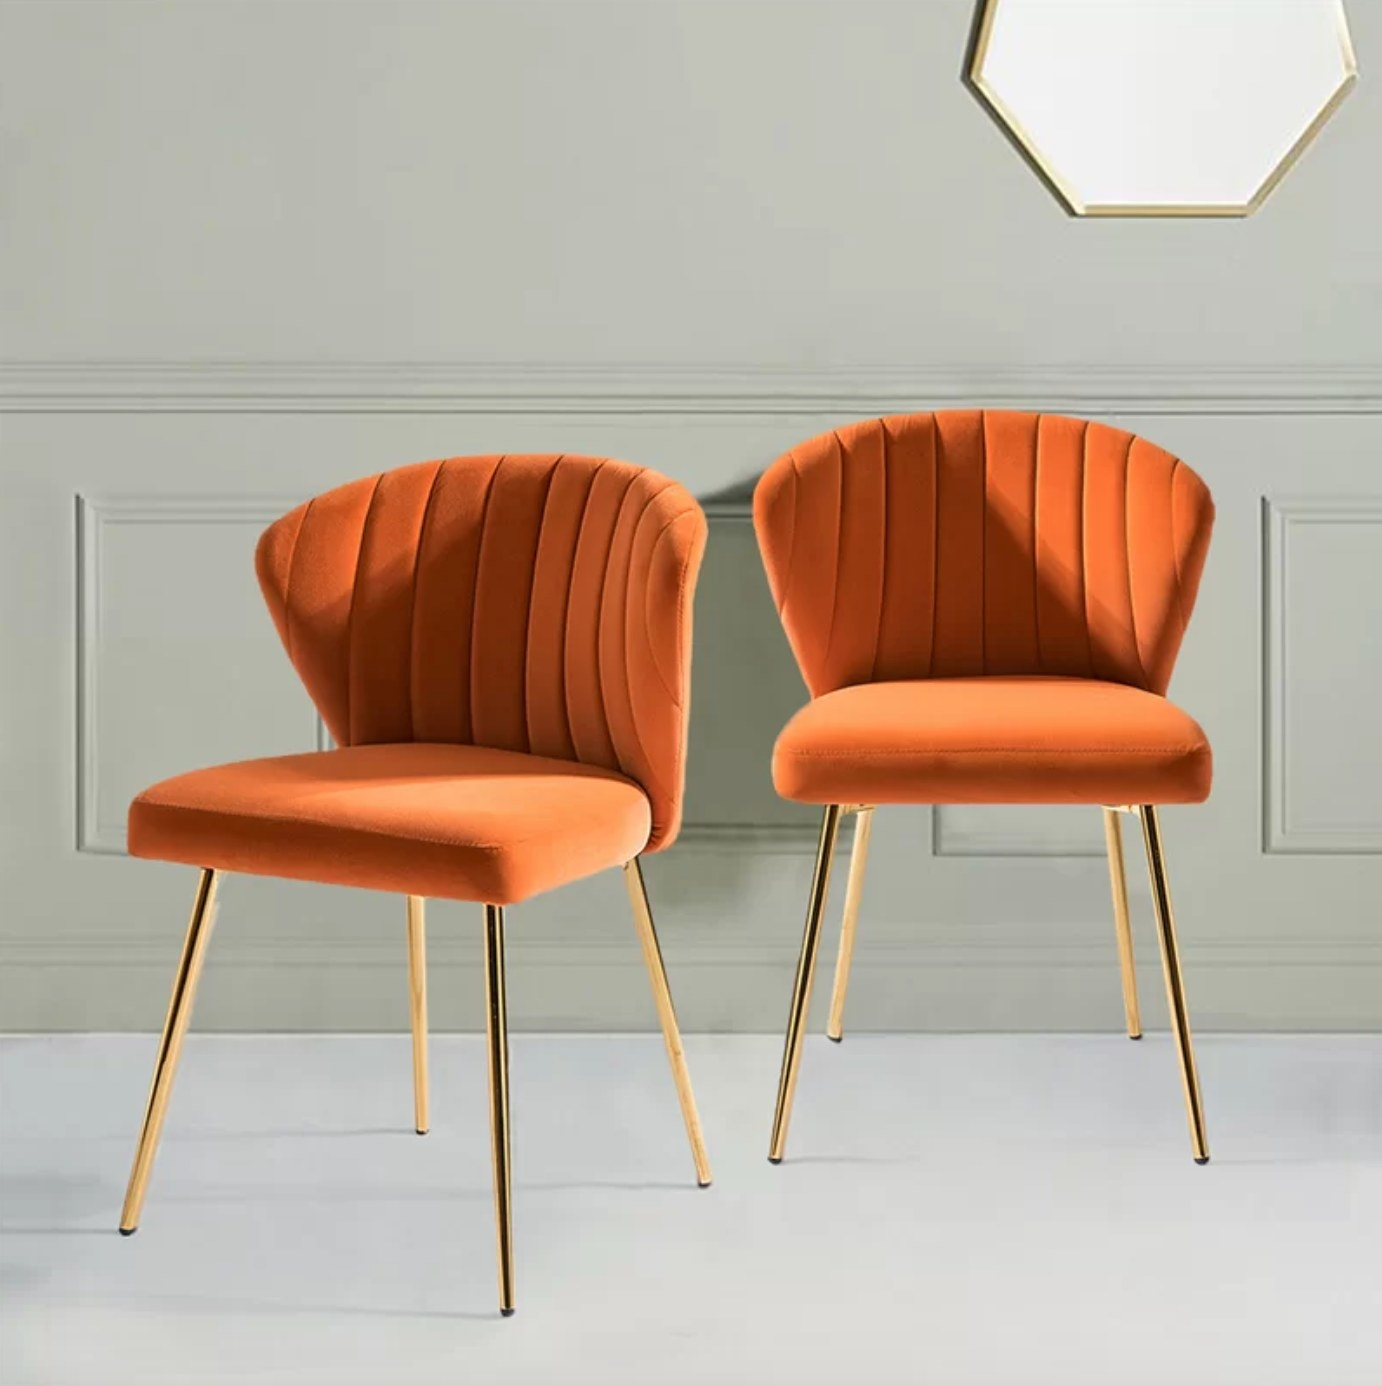 The set of side chairs in orange